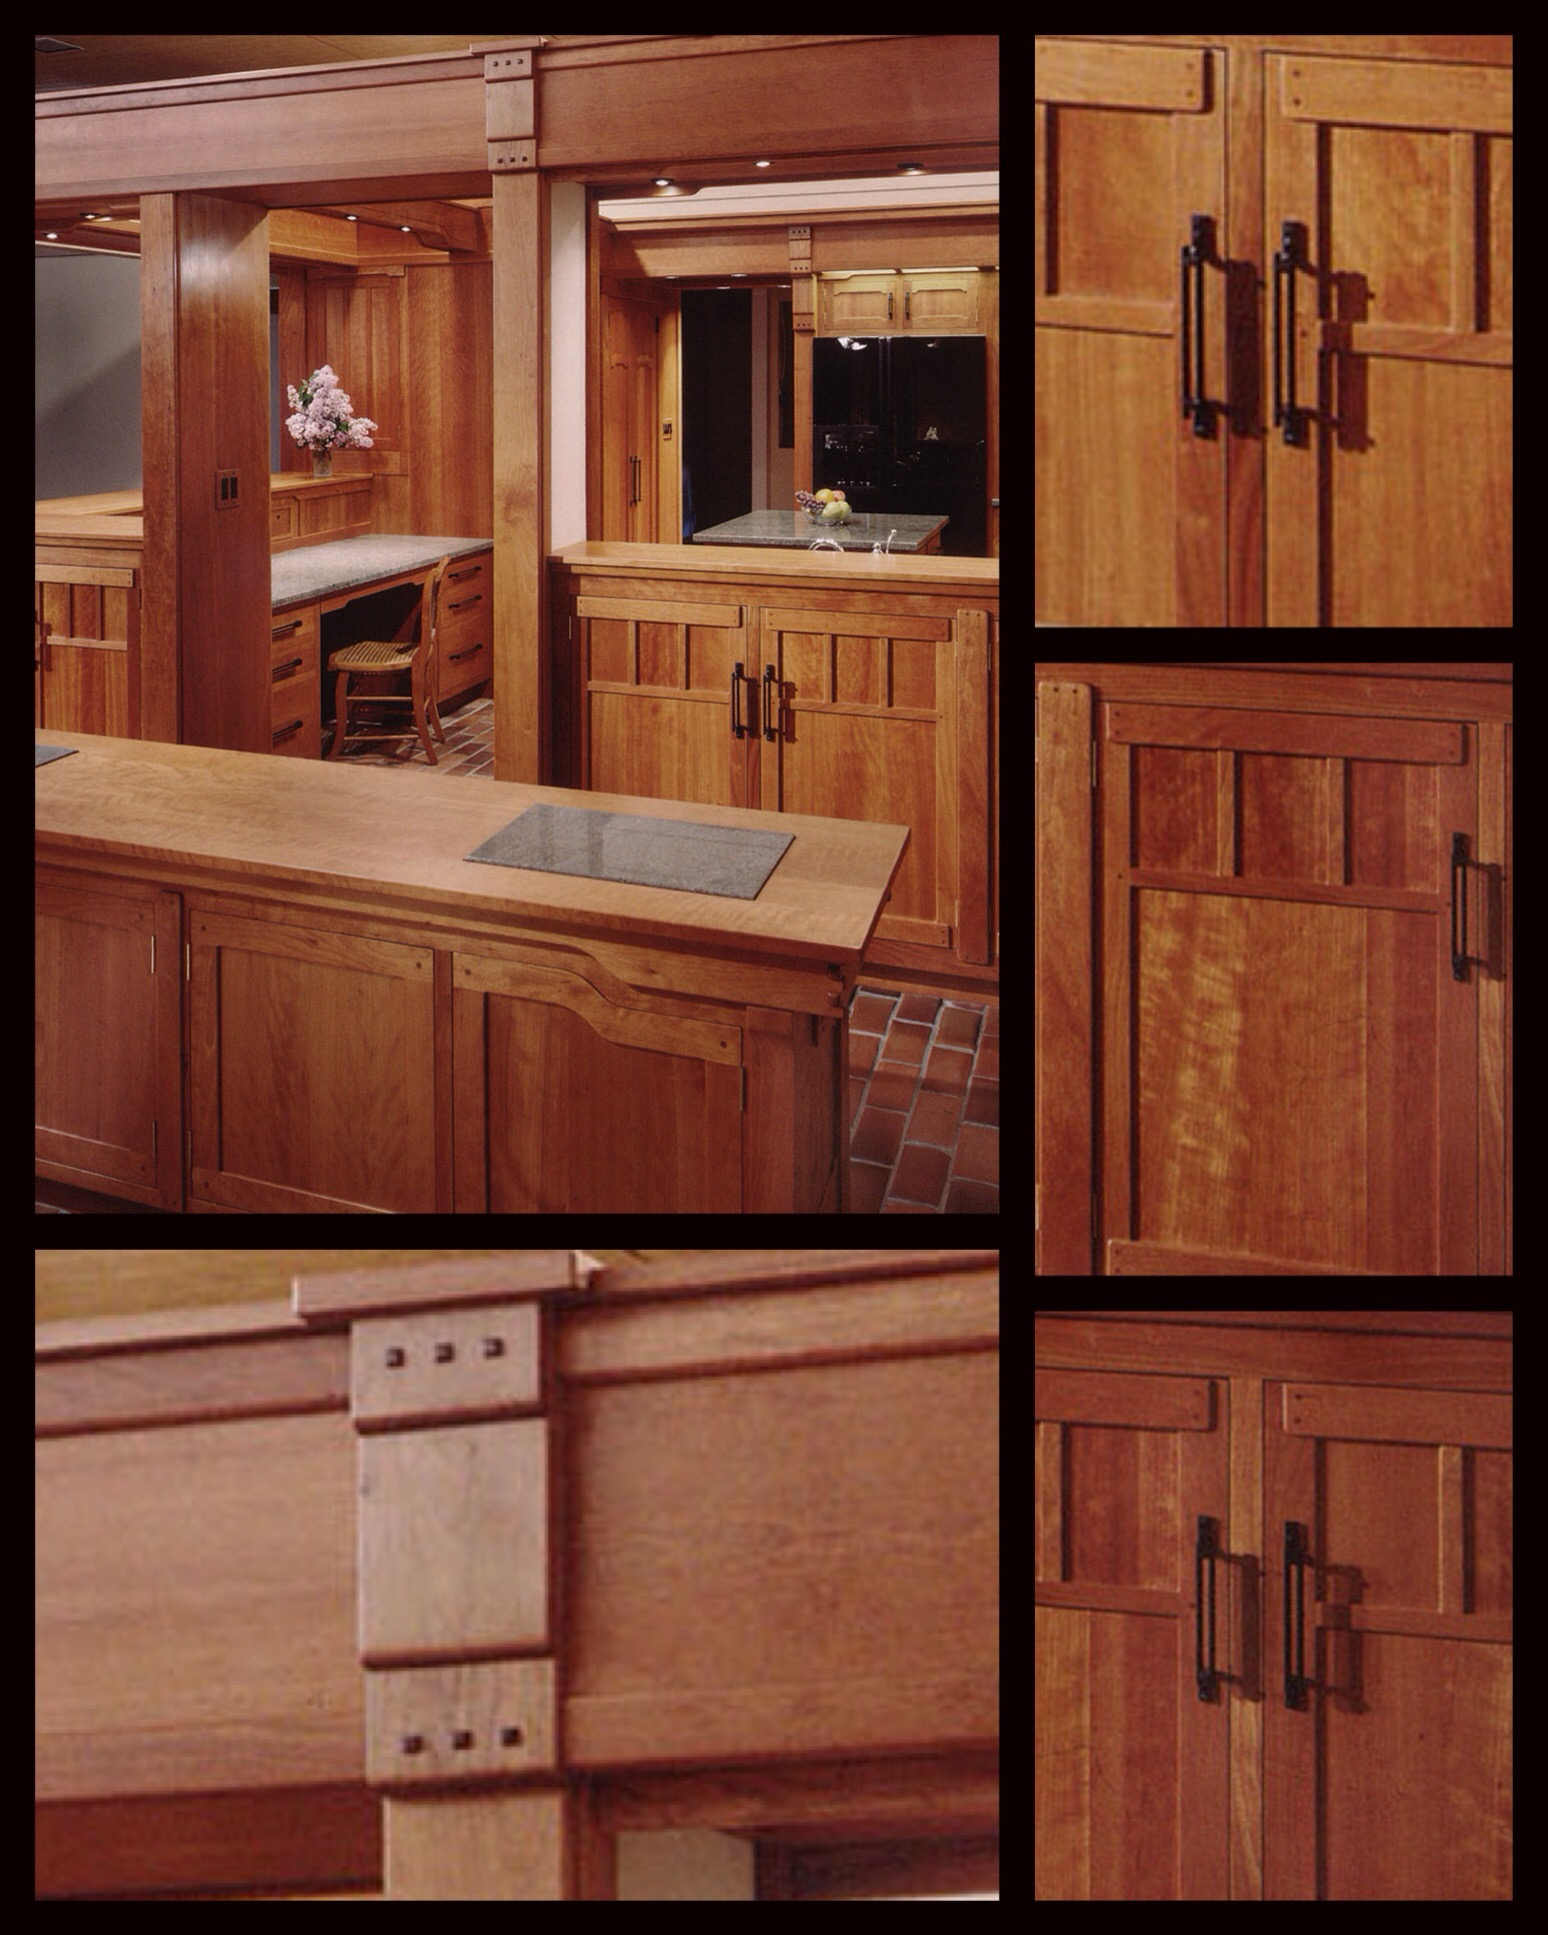 cherry, hardwood, design/build and handcrafted by the woodworkers and designers of a small business cabinetry design shop in barboursville va